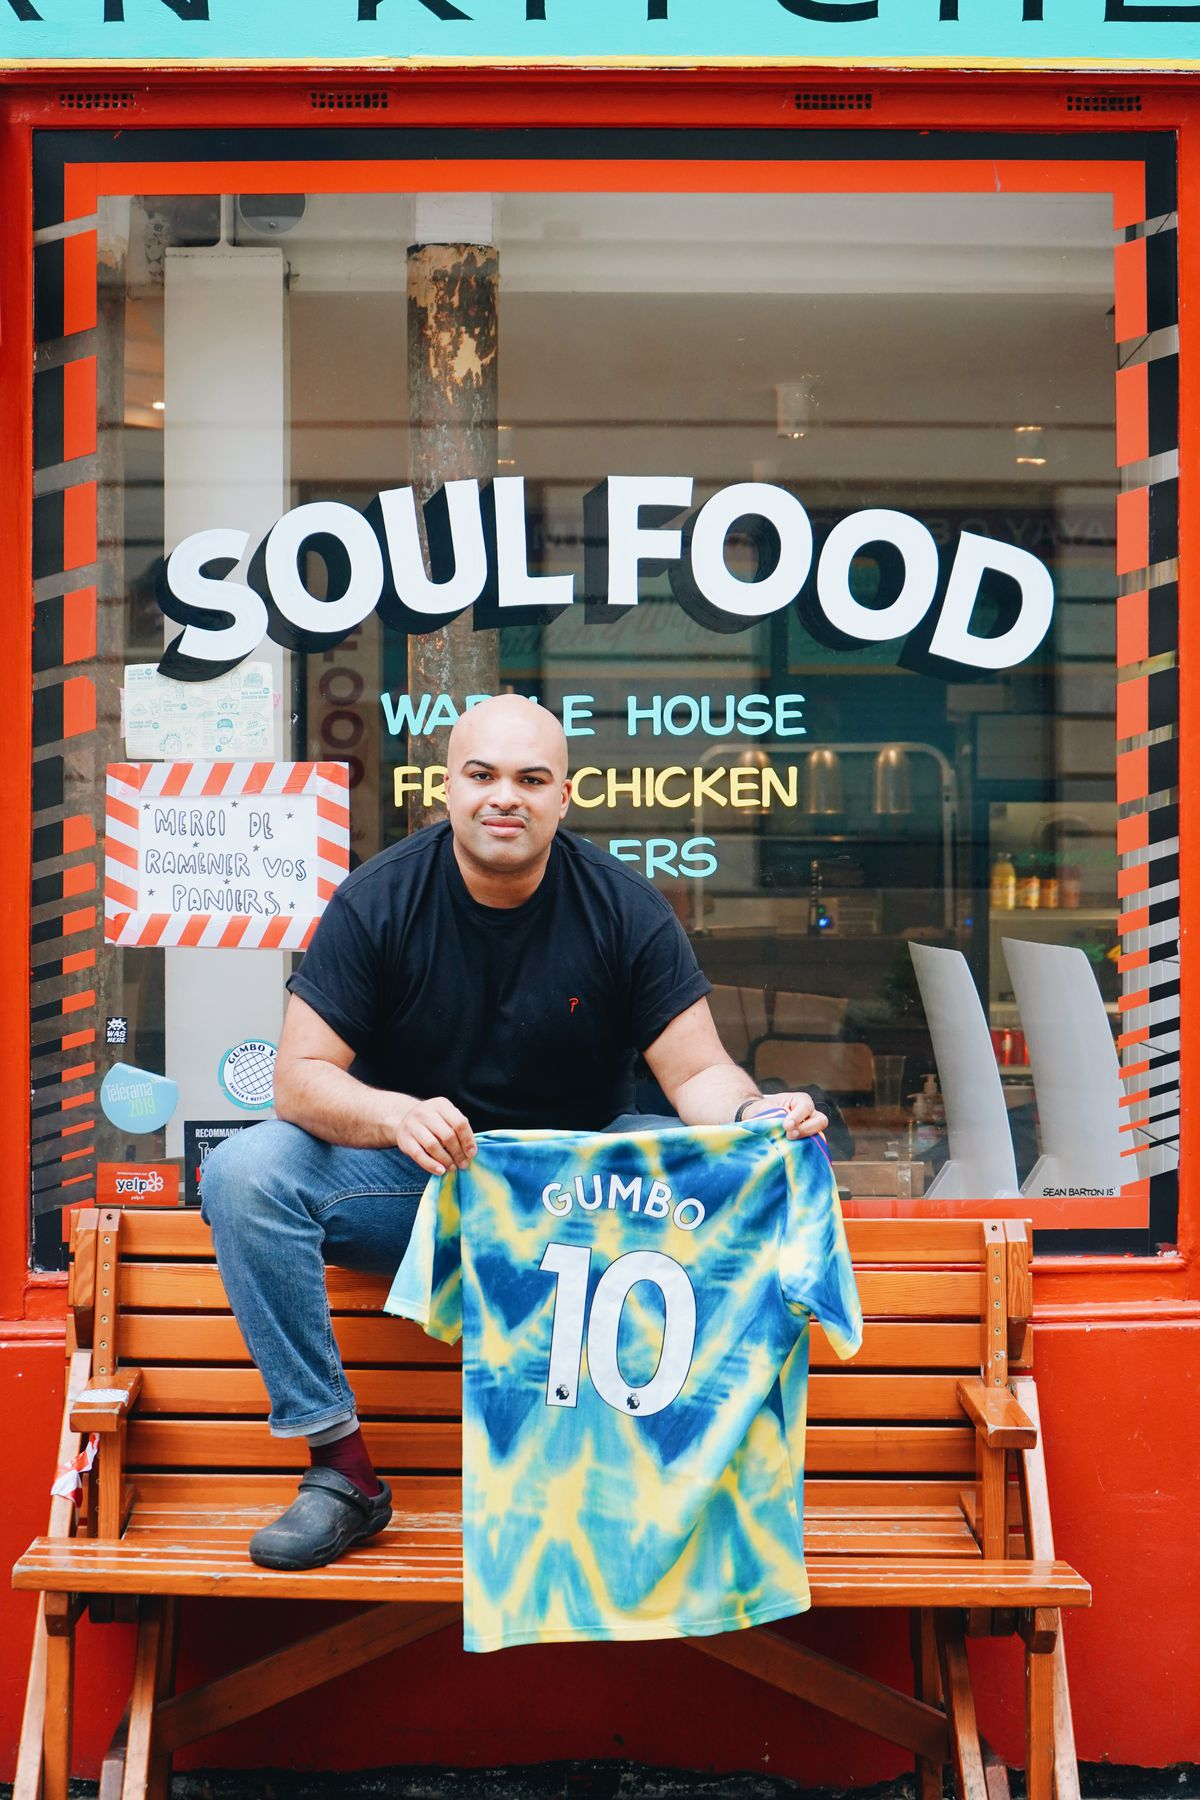 "Lionel Chauvel-Maga sits on a wooden bench in front of his restaurant, holding a blue tie-dye t-shirt that says ""Gumbo 10."" The words ""Soul Food"" are written in white letters on the window above him."